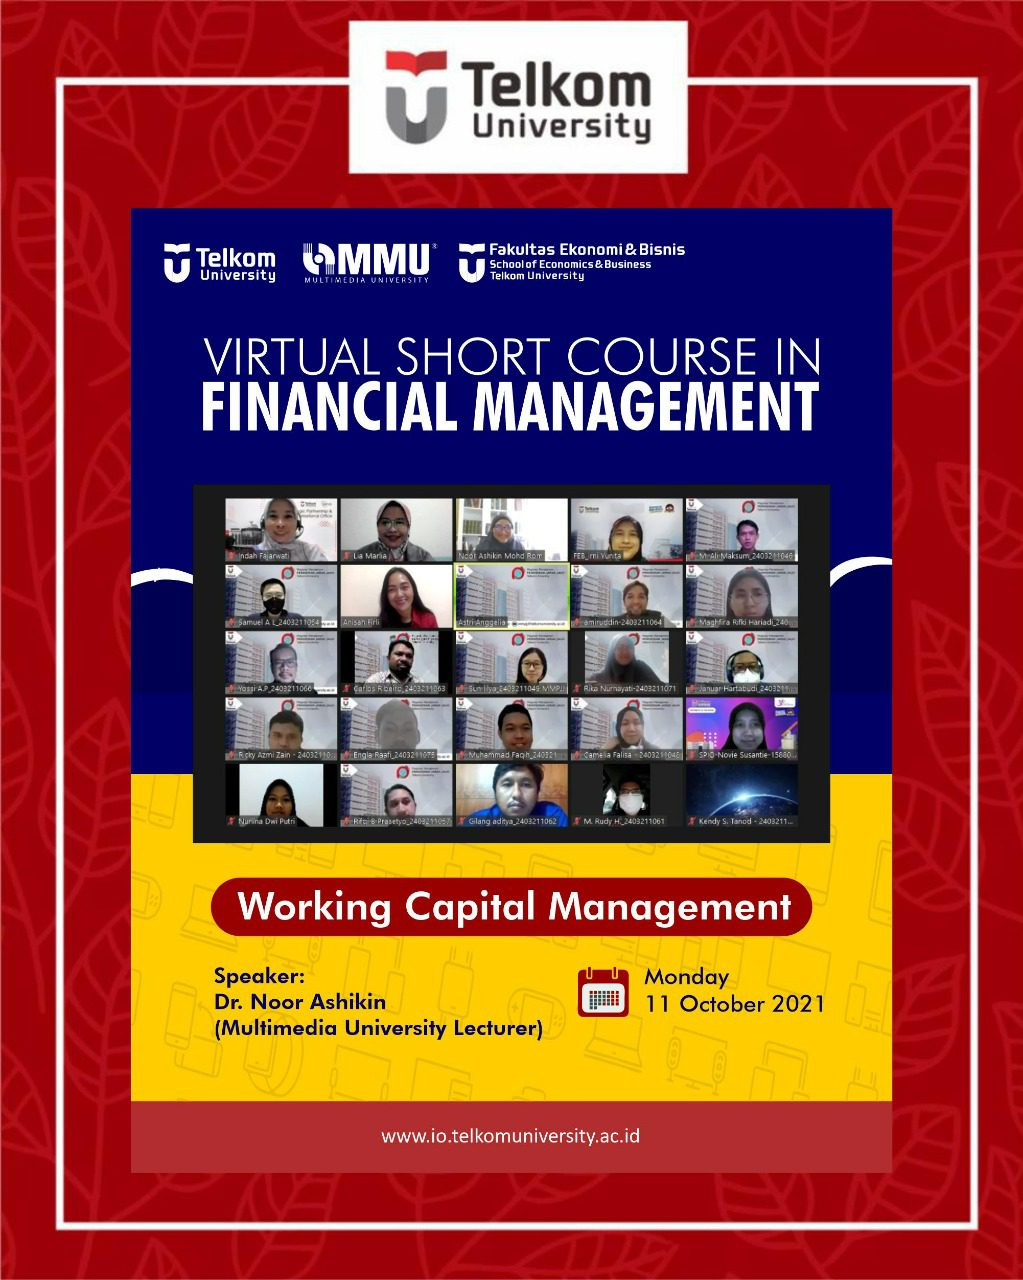 Financial Management Virtual Short Course: 7th Meeting